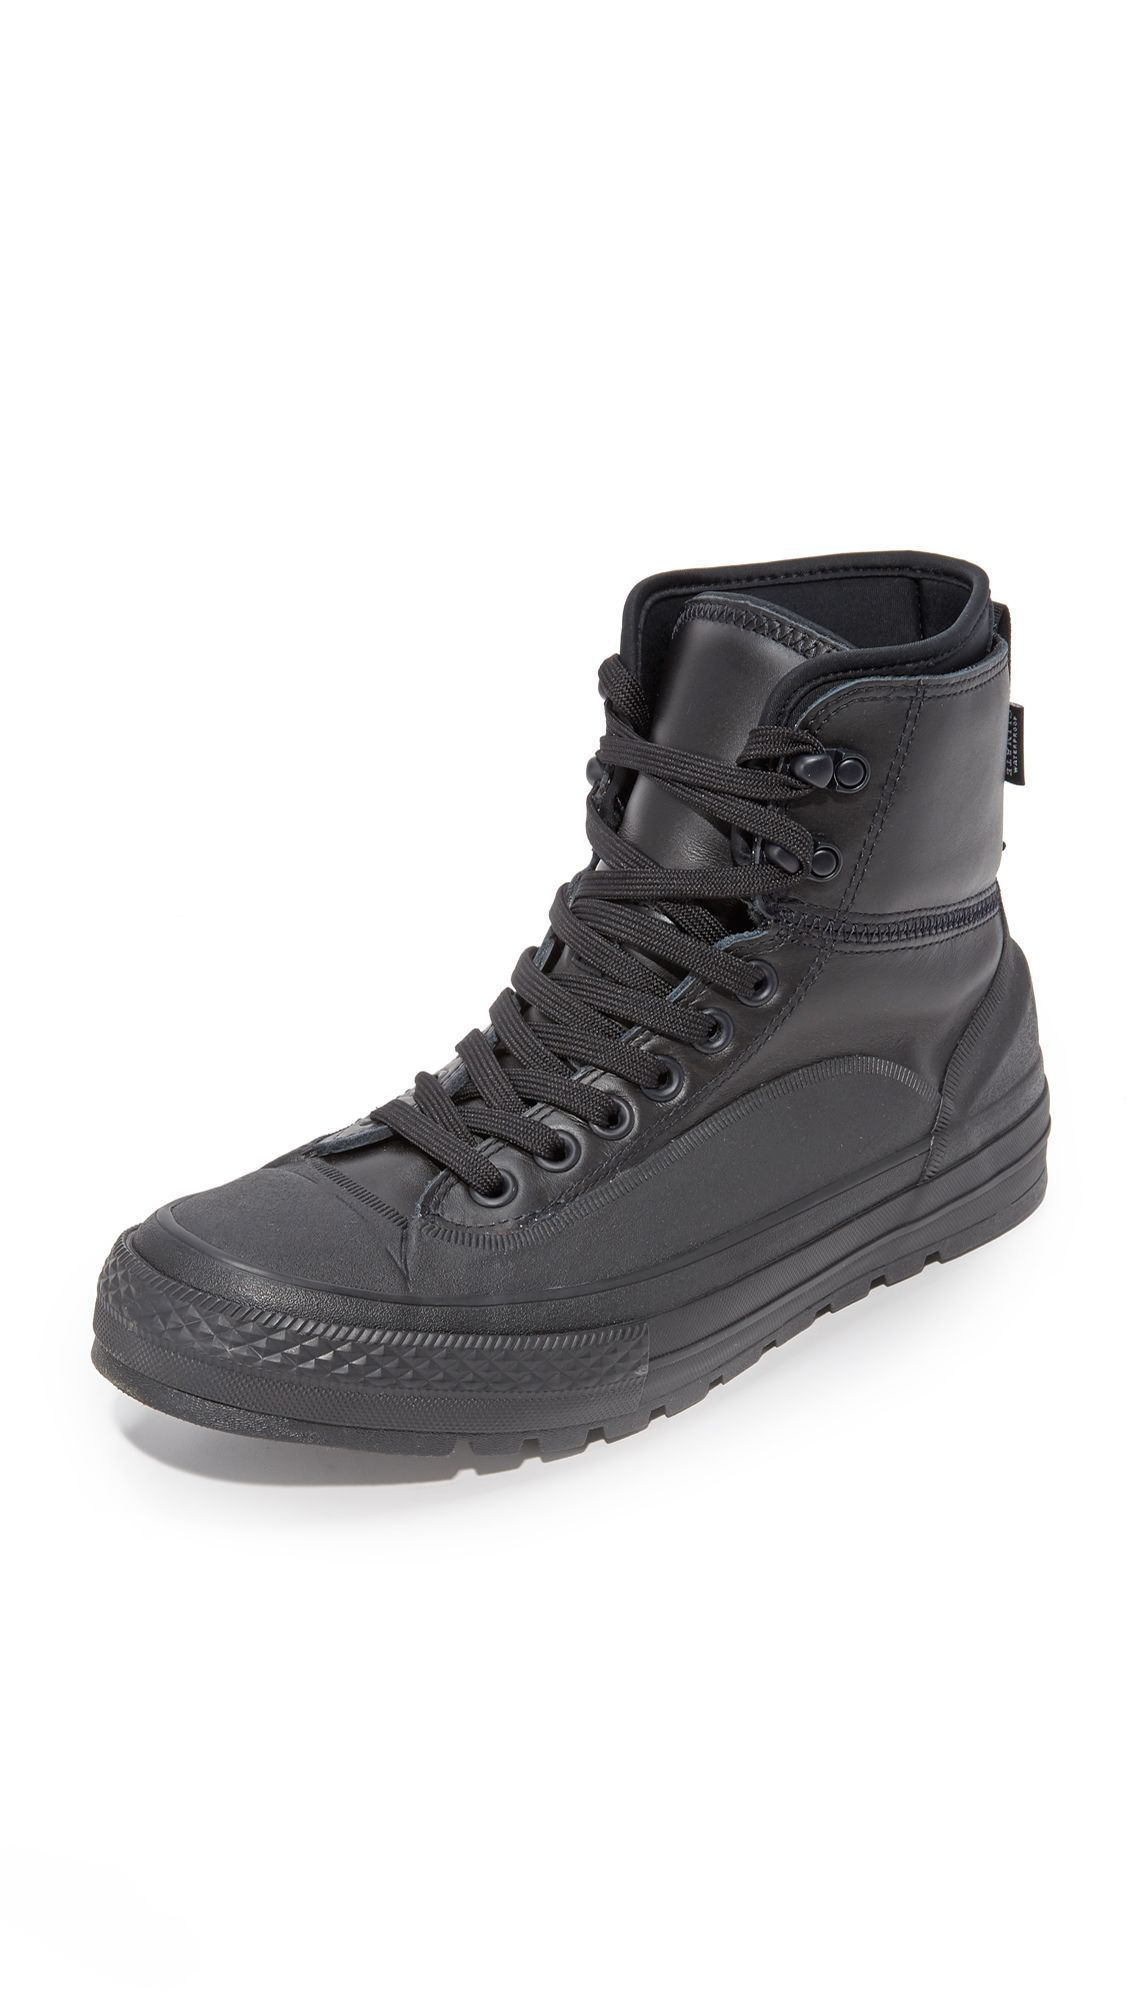 cd9b412415330e CONVERSE Chuck Taylor Waterproof All Star Tekoa Boots.  converse  shoes   boots